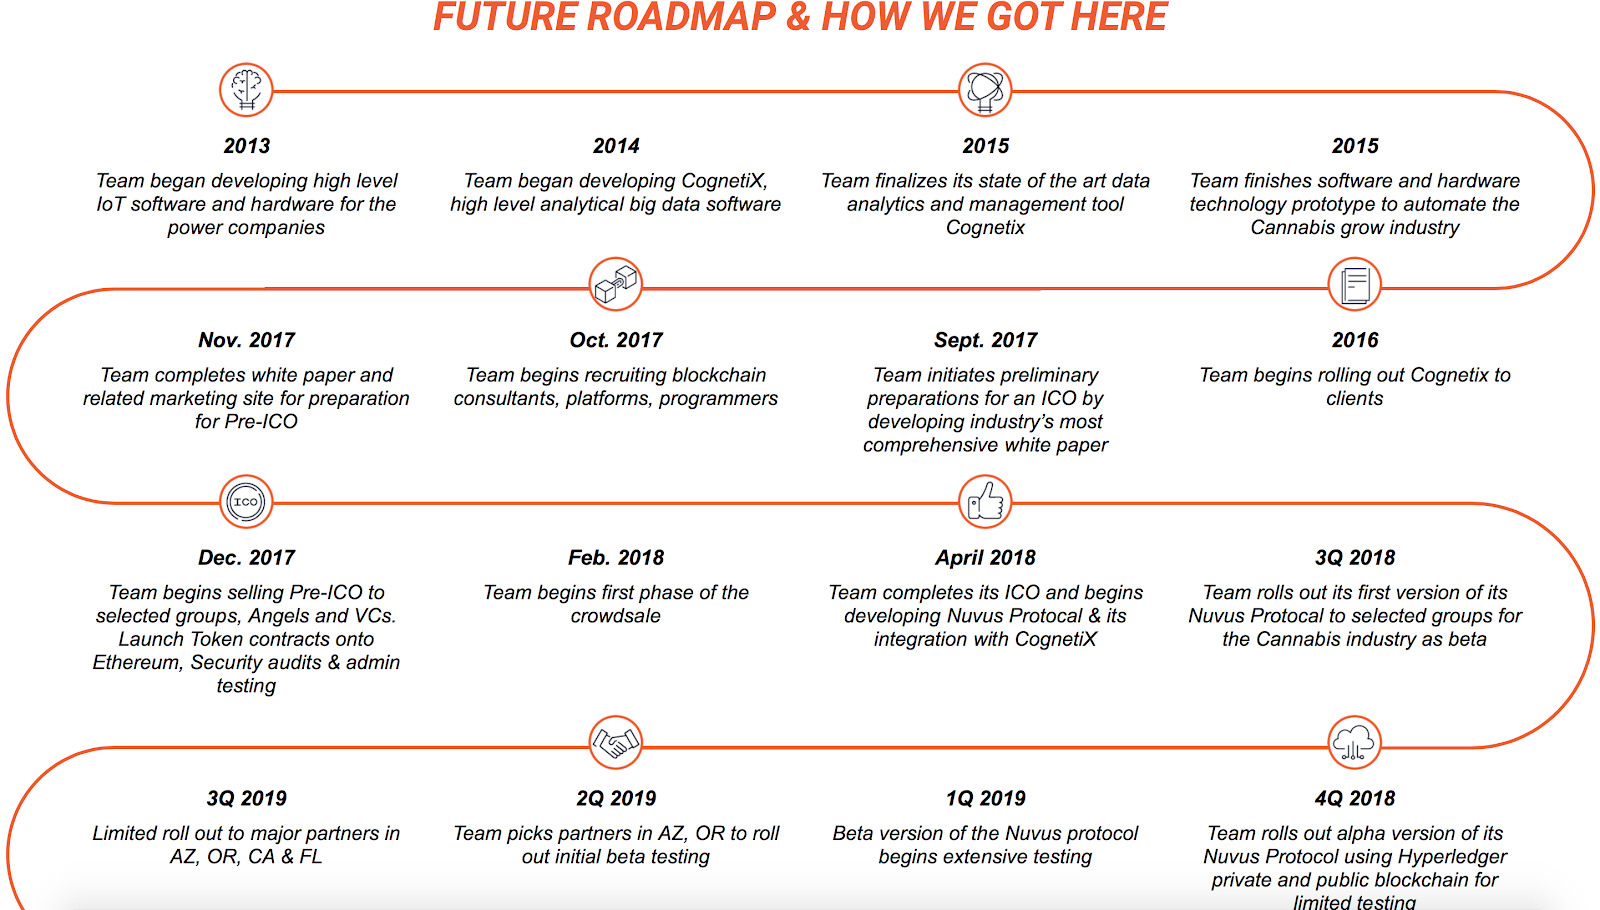 Nuvus's roadmap